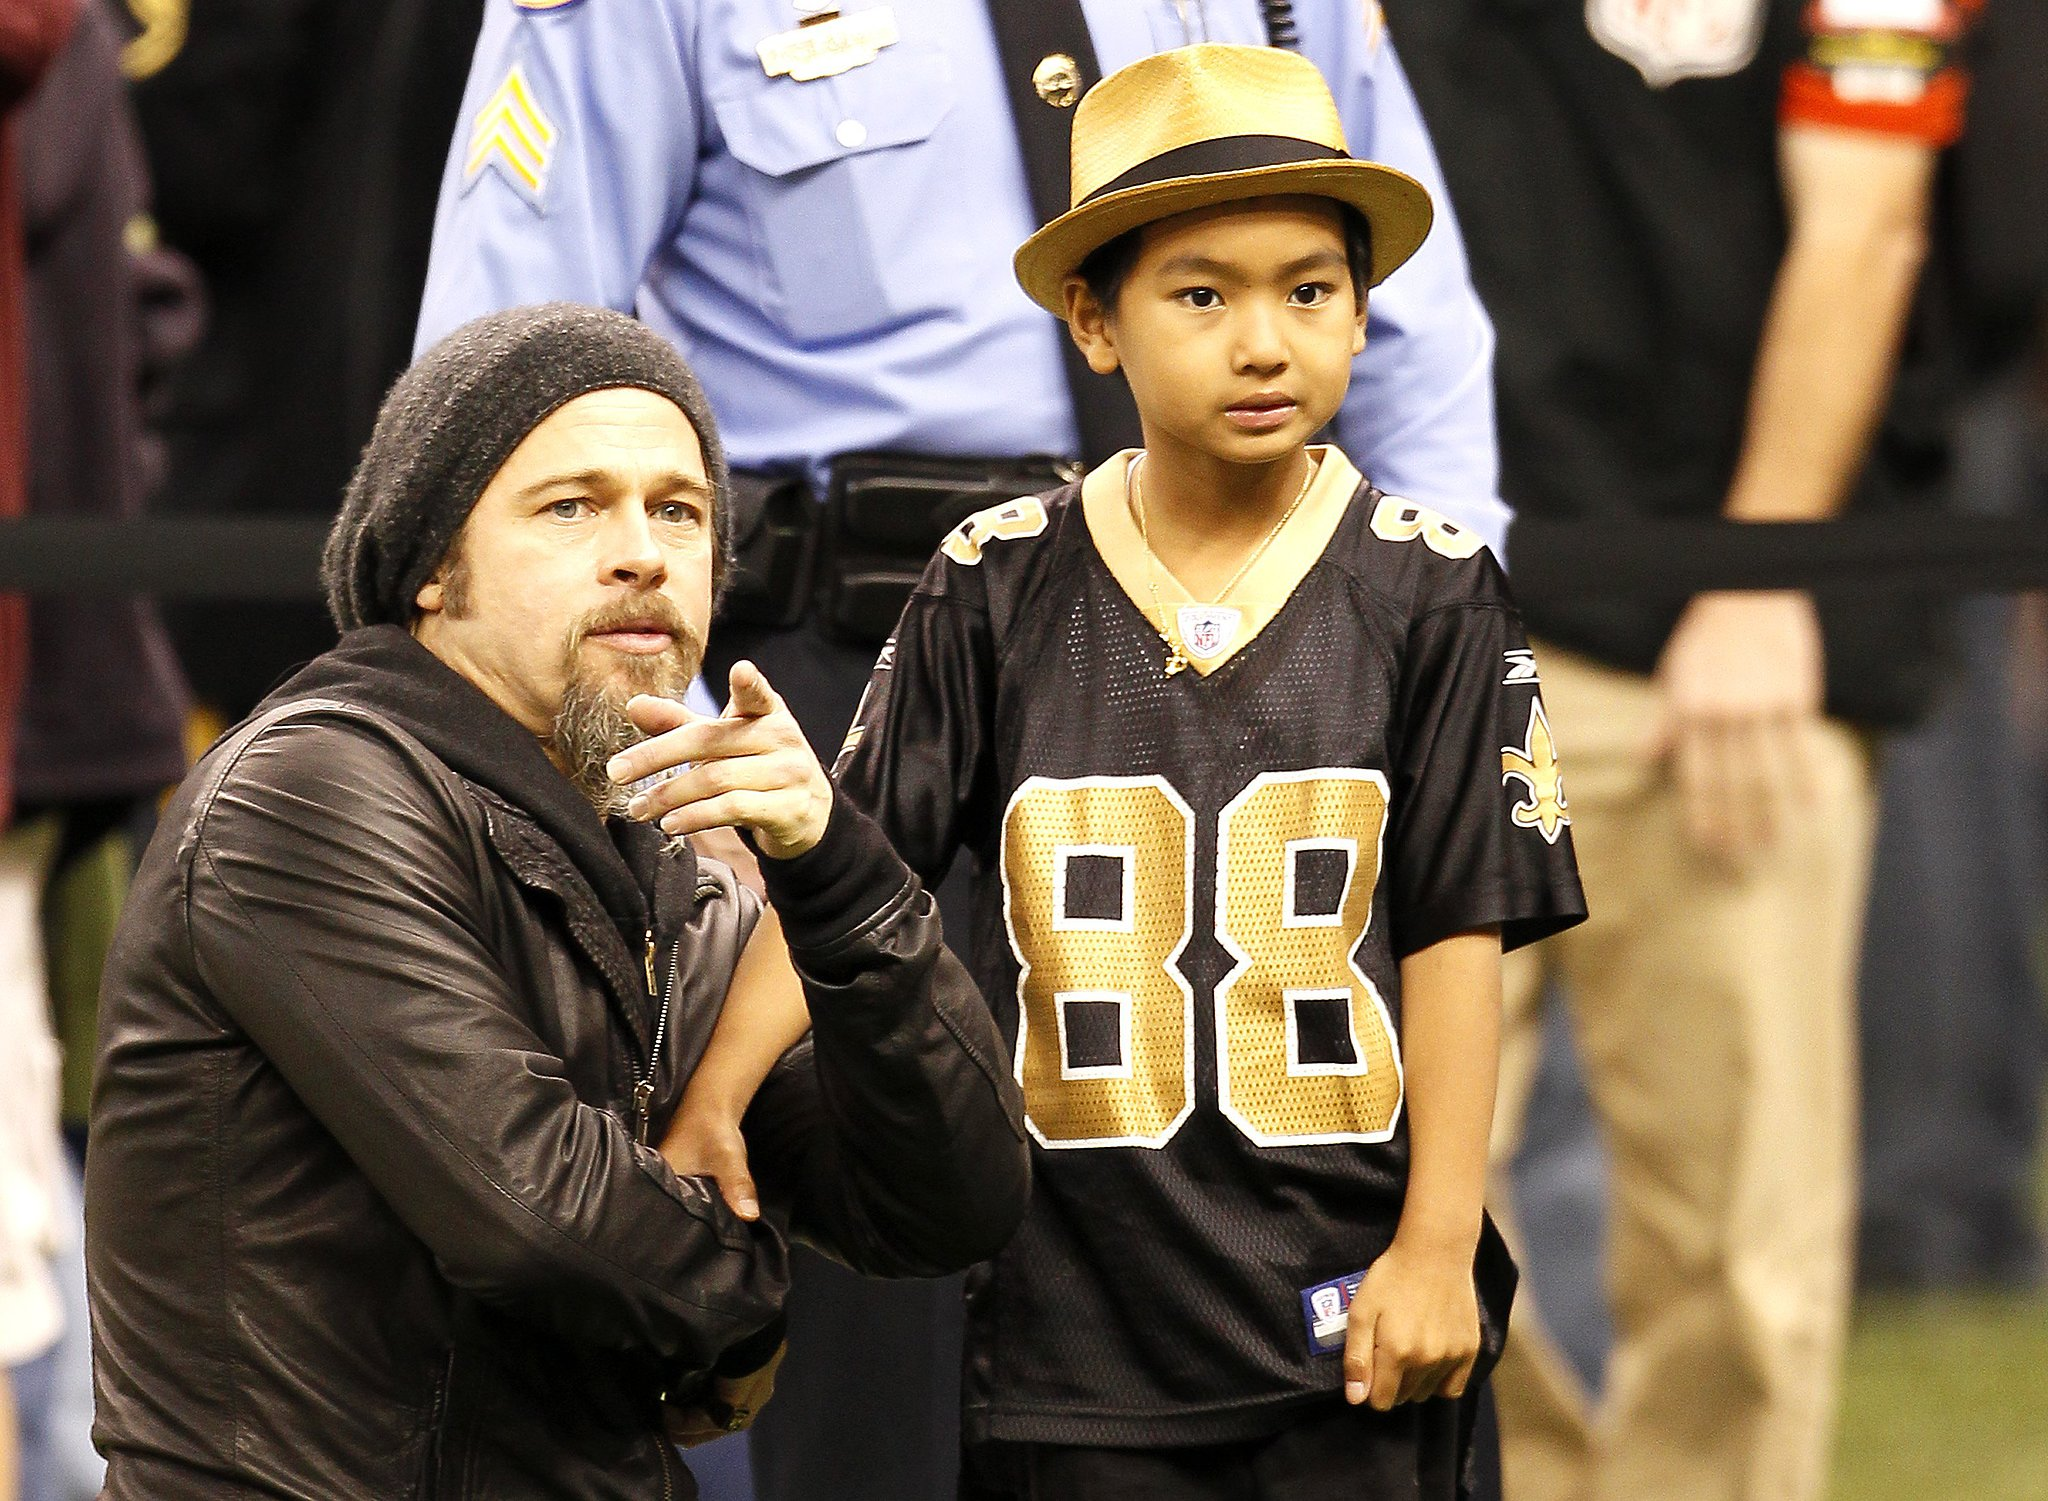 Brad pitt checked out a New Orleans Saints game with Maddox in January 2010.